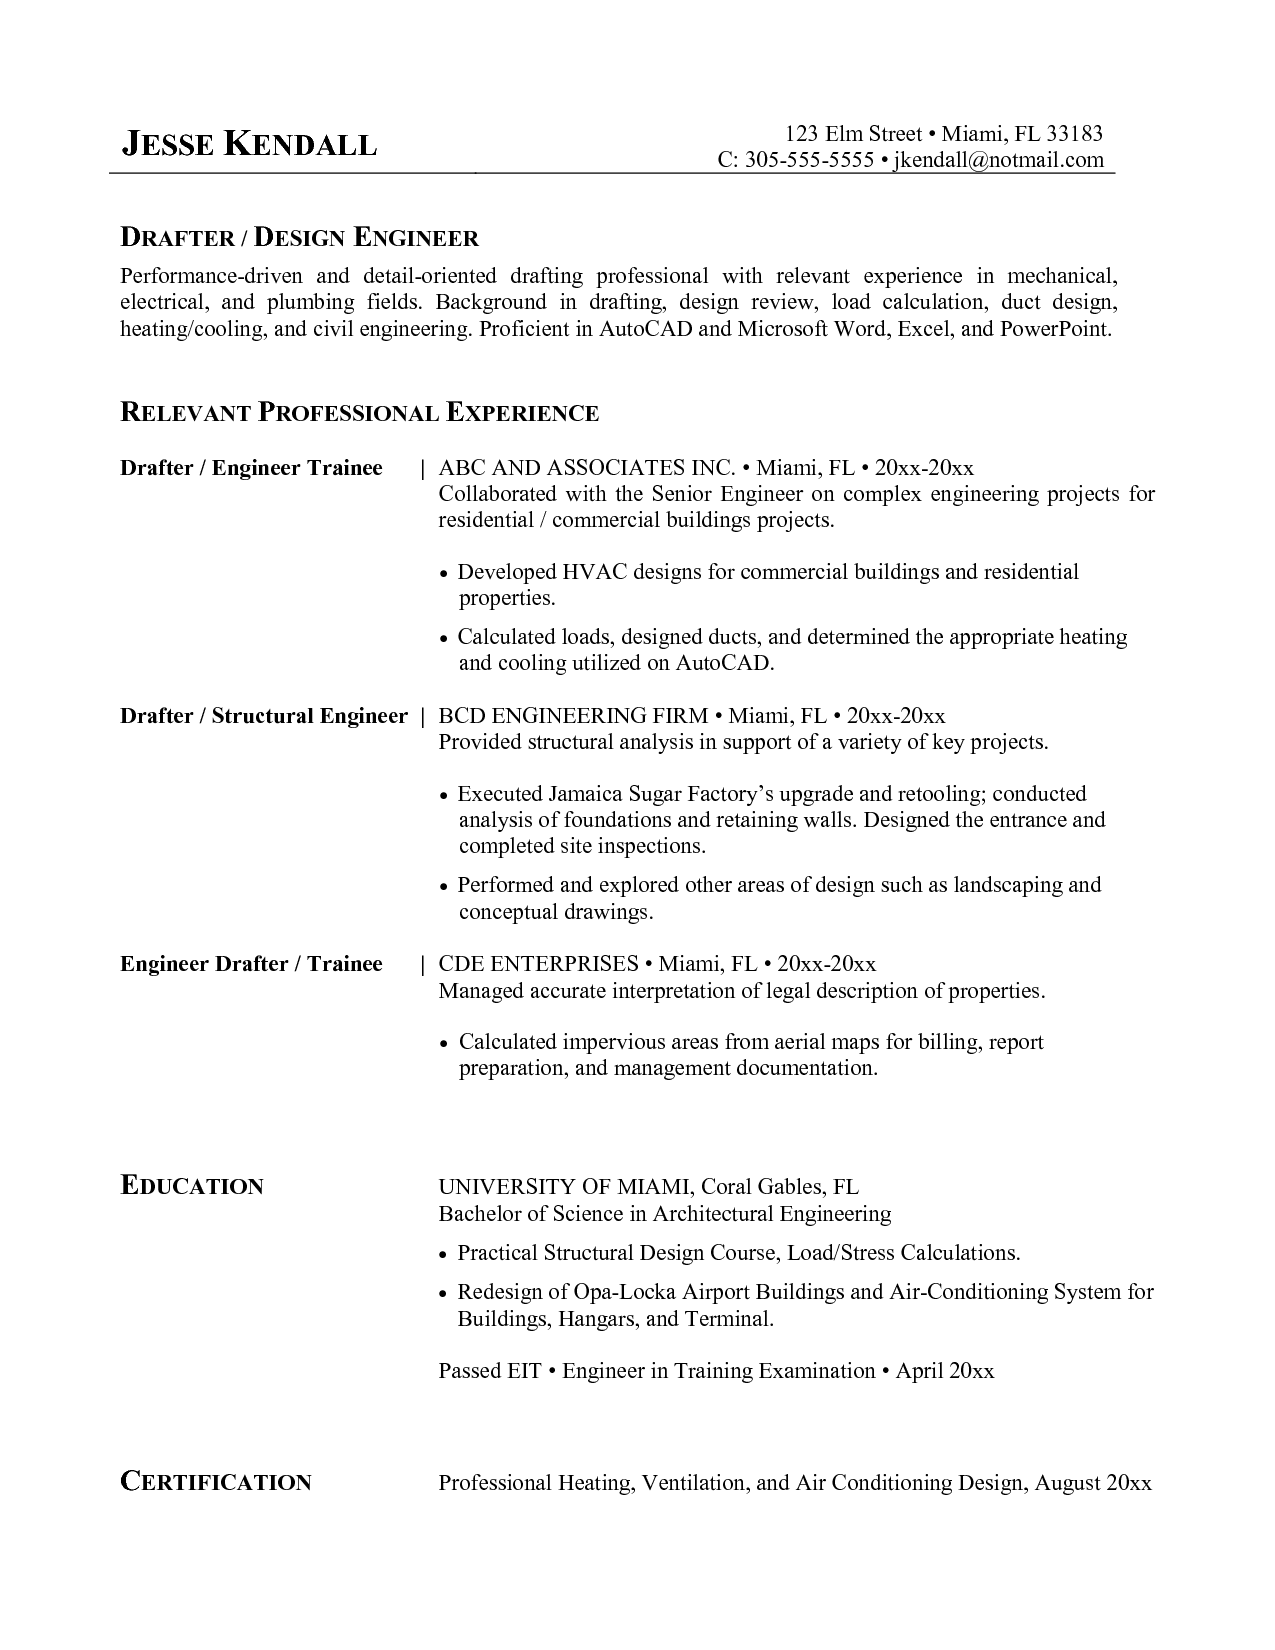 great hvac resume samplehvac resume samples templateshvac resume formathvac resume objectivehvac resume cover letterhvac resume examplehvac